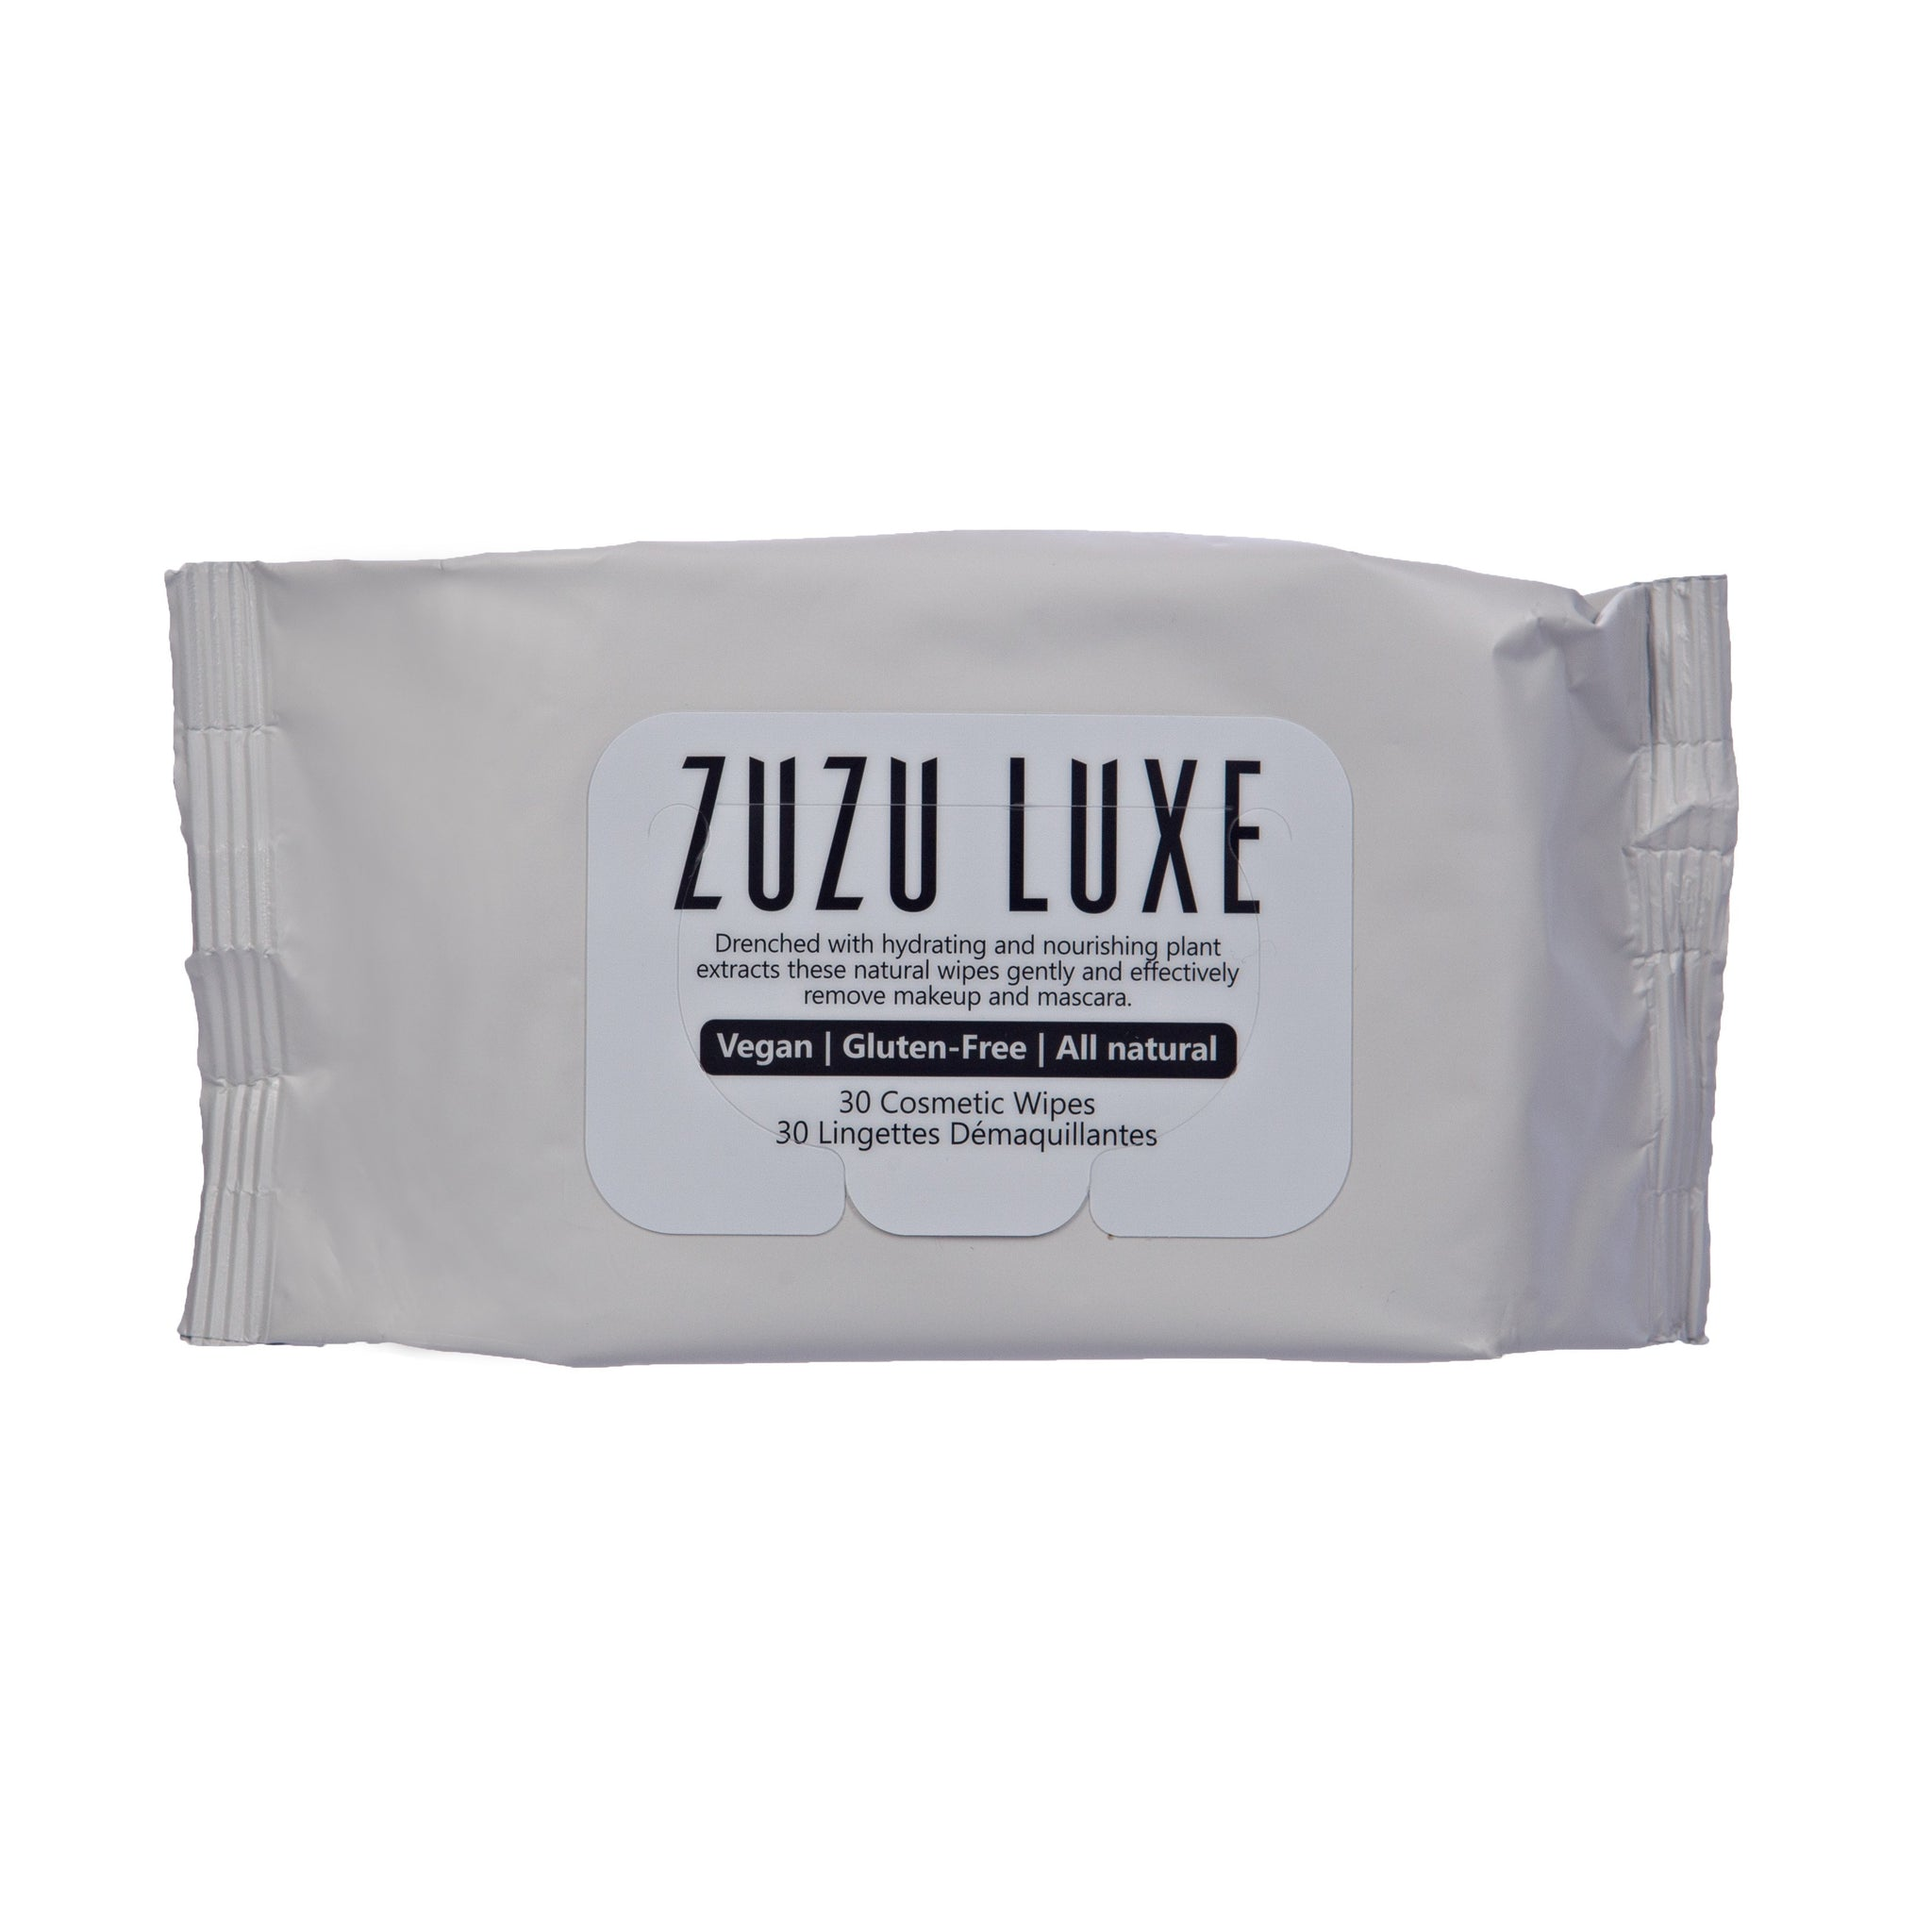 Zuzu Luxe - Zuzu Luxe Wipes